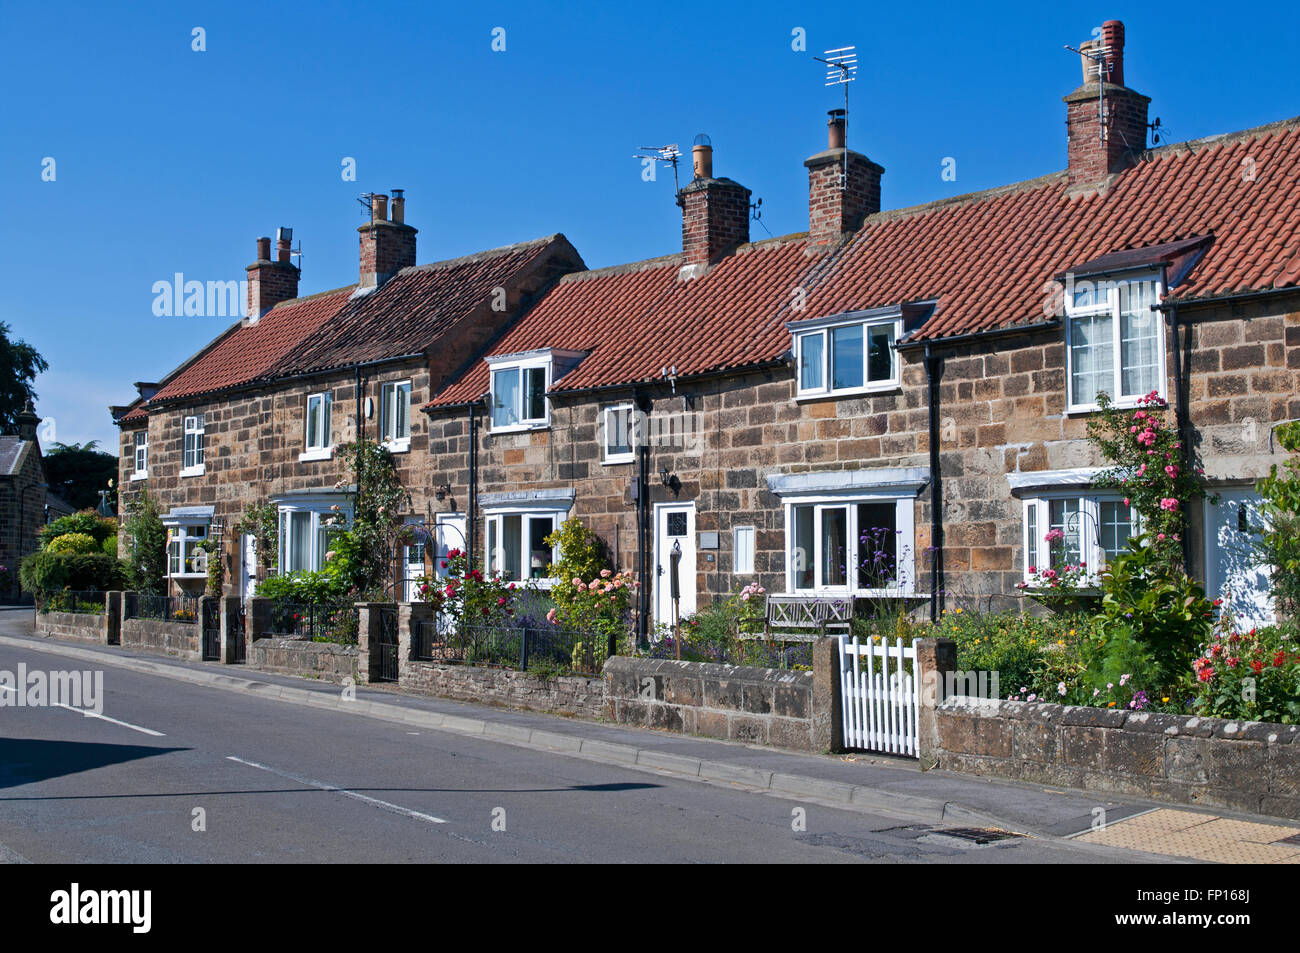 Quaint houses with red roofs stock photos quaint houses for Up north cottages